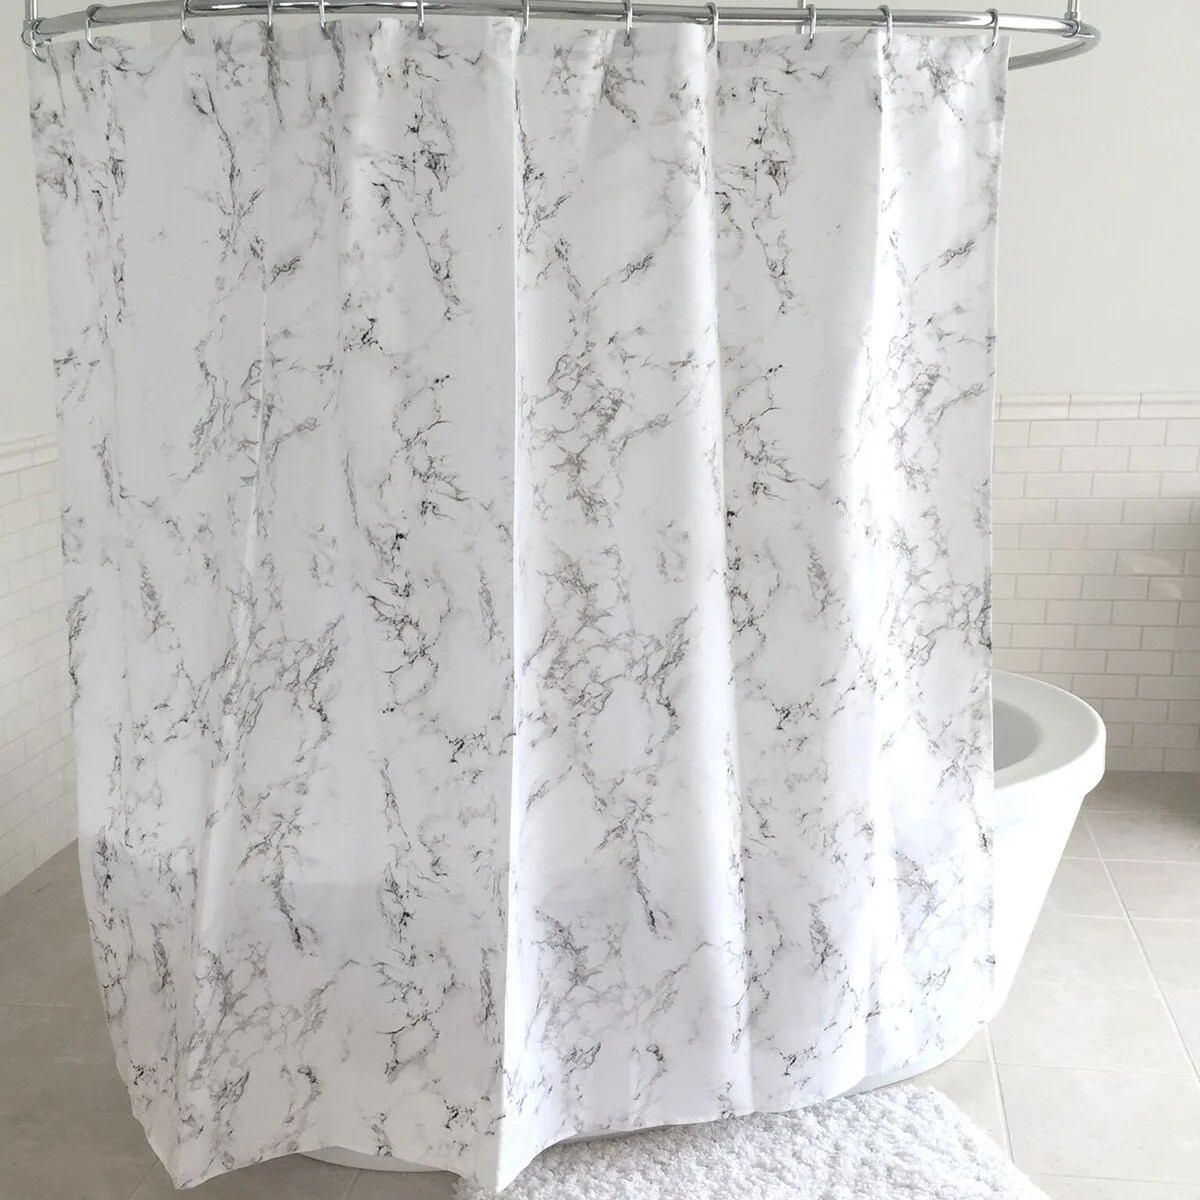 Marble Fabric Shower Curtain And Hooks Set Or Separates Overstock 16343069